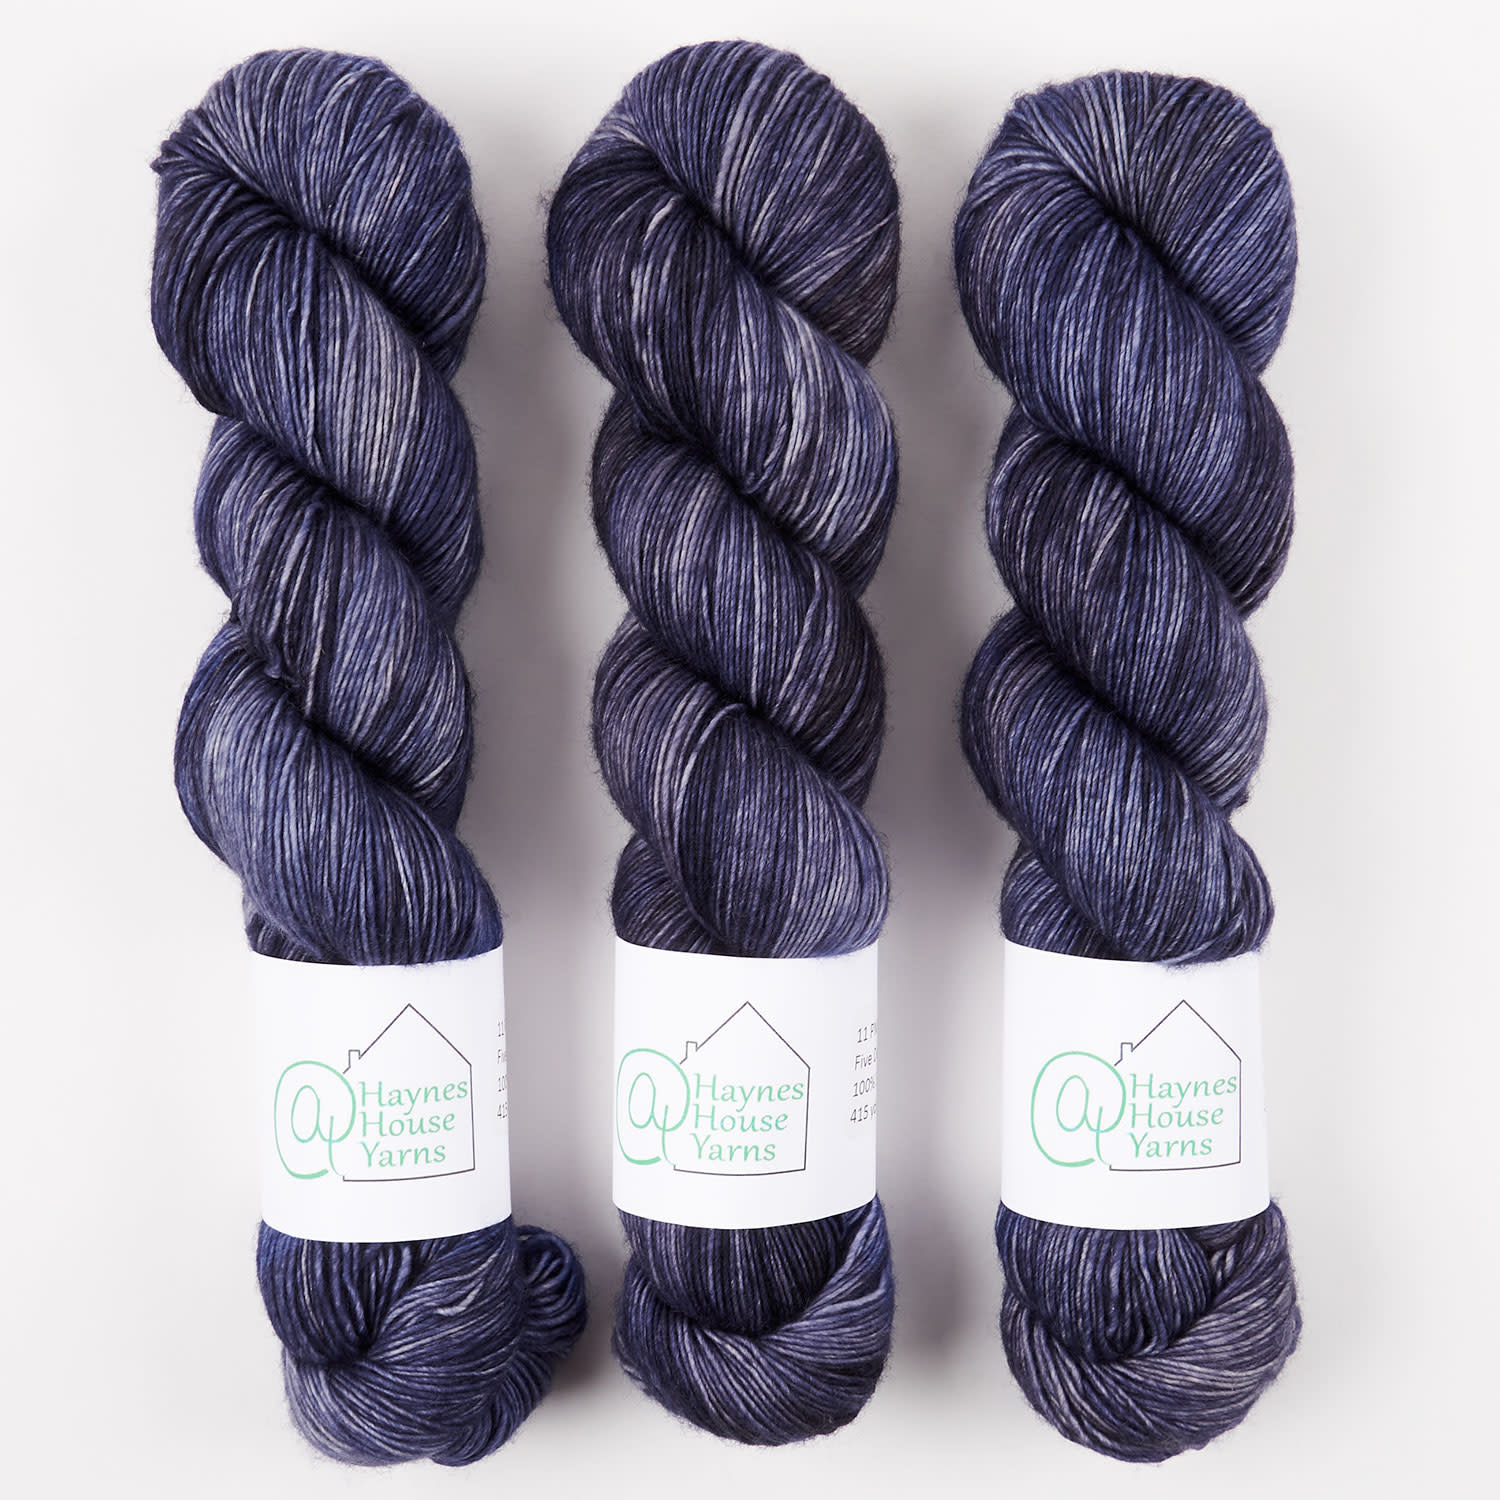 AT Haynes House Yarn RUSTIC FINGERING - ELEVEN PM WAKE-UP CALL